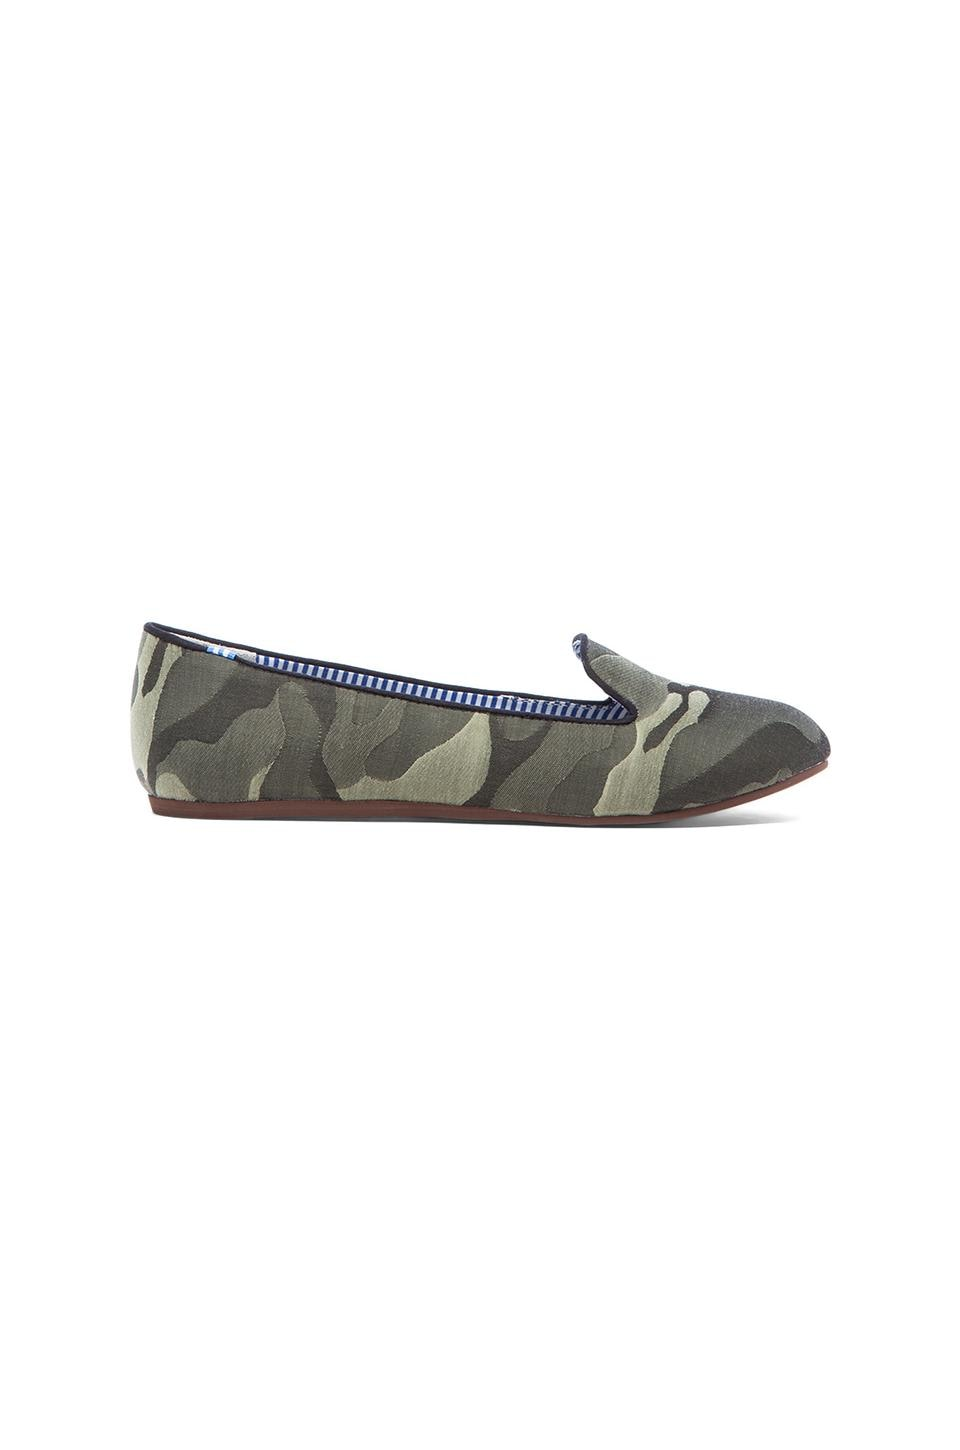 Charles Philip Shanghai Sheila Loafer in Military Green